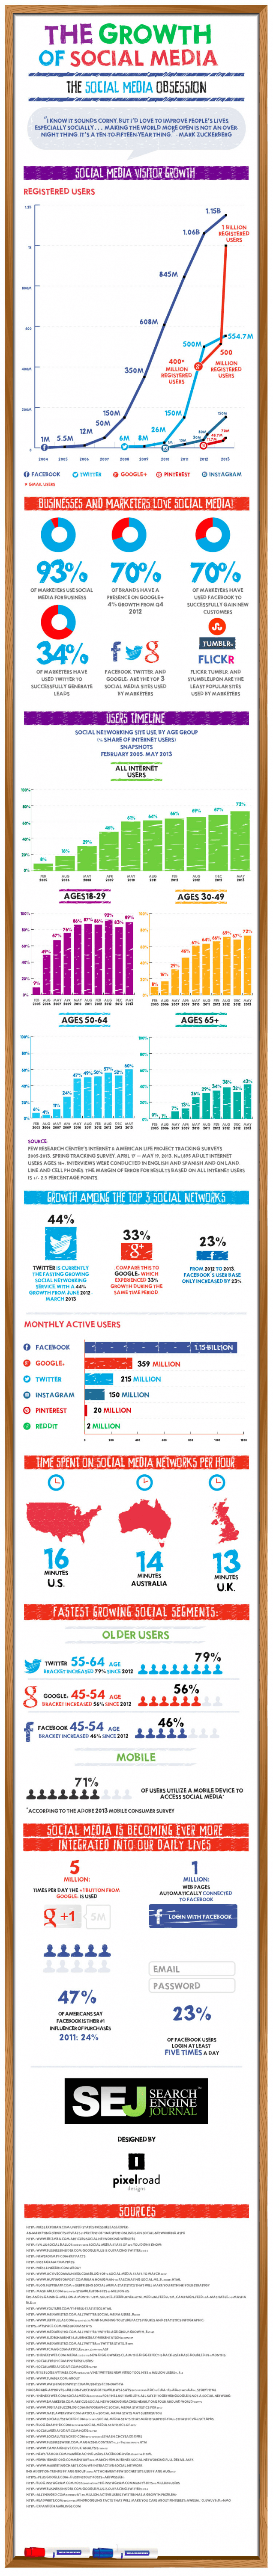 The Growth of Social Media v2.0 [INFOGRAPHIC]